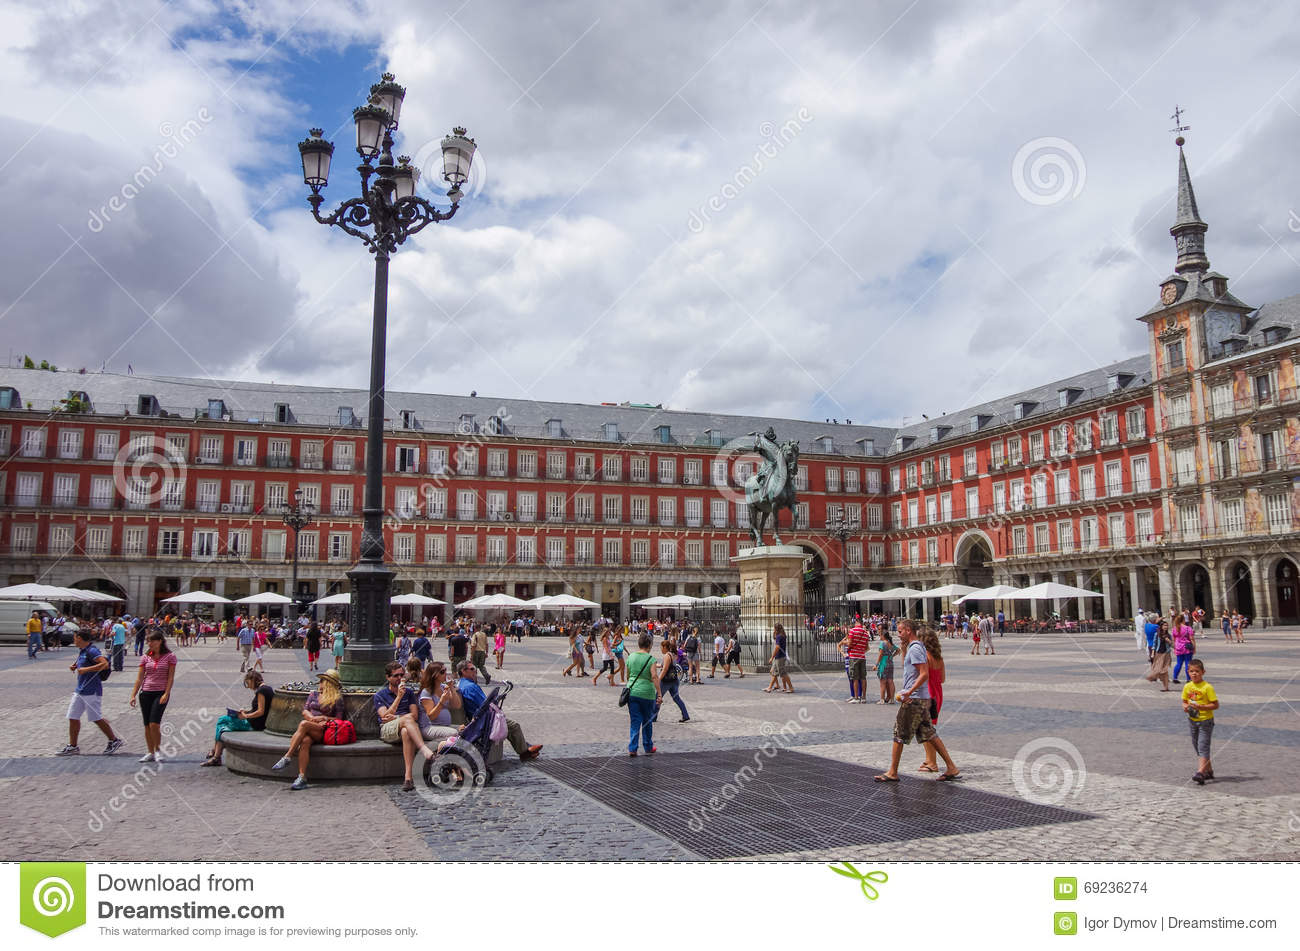 MADRID, SPAIN - JULY 4: Statue of Philip III at Mayor plaza in M